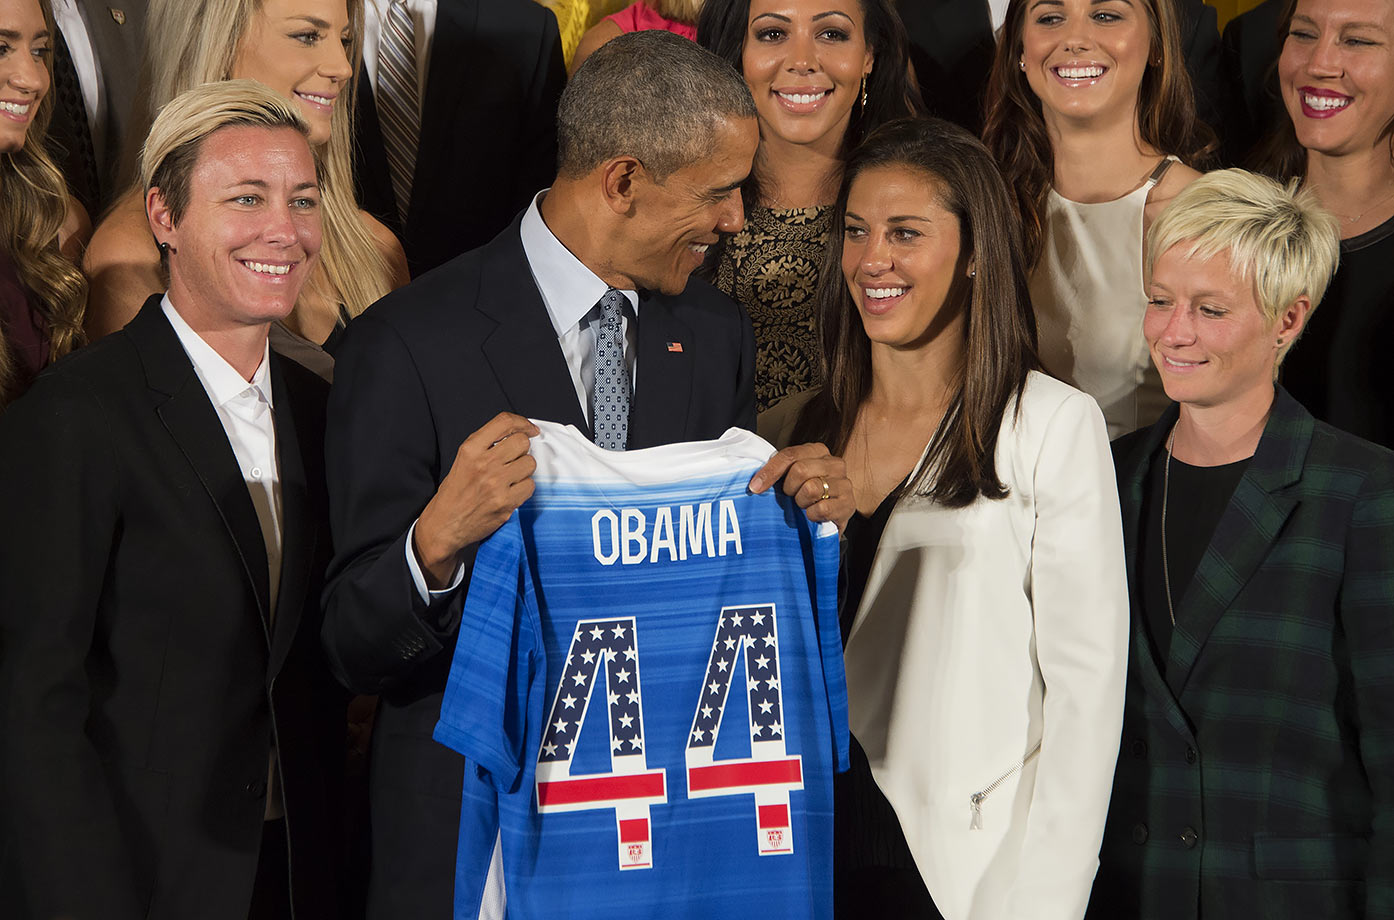 President Obama honors USWNT at White House for winning World Cup